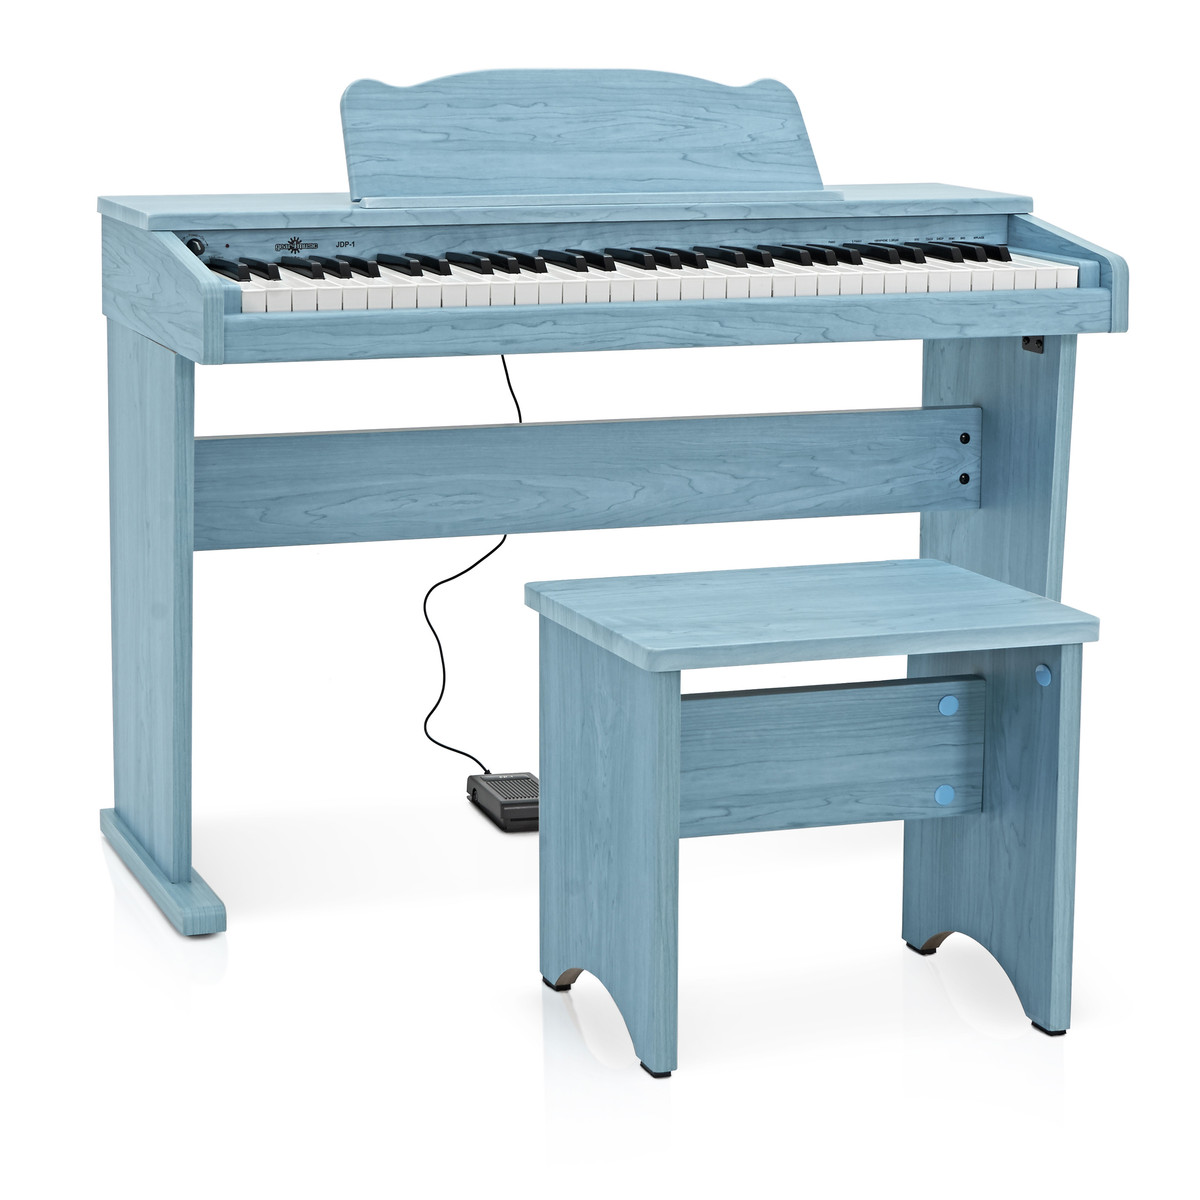 Image of JDP-1 Junior Digital Piano by Gear4music Blue